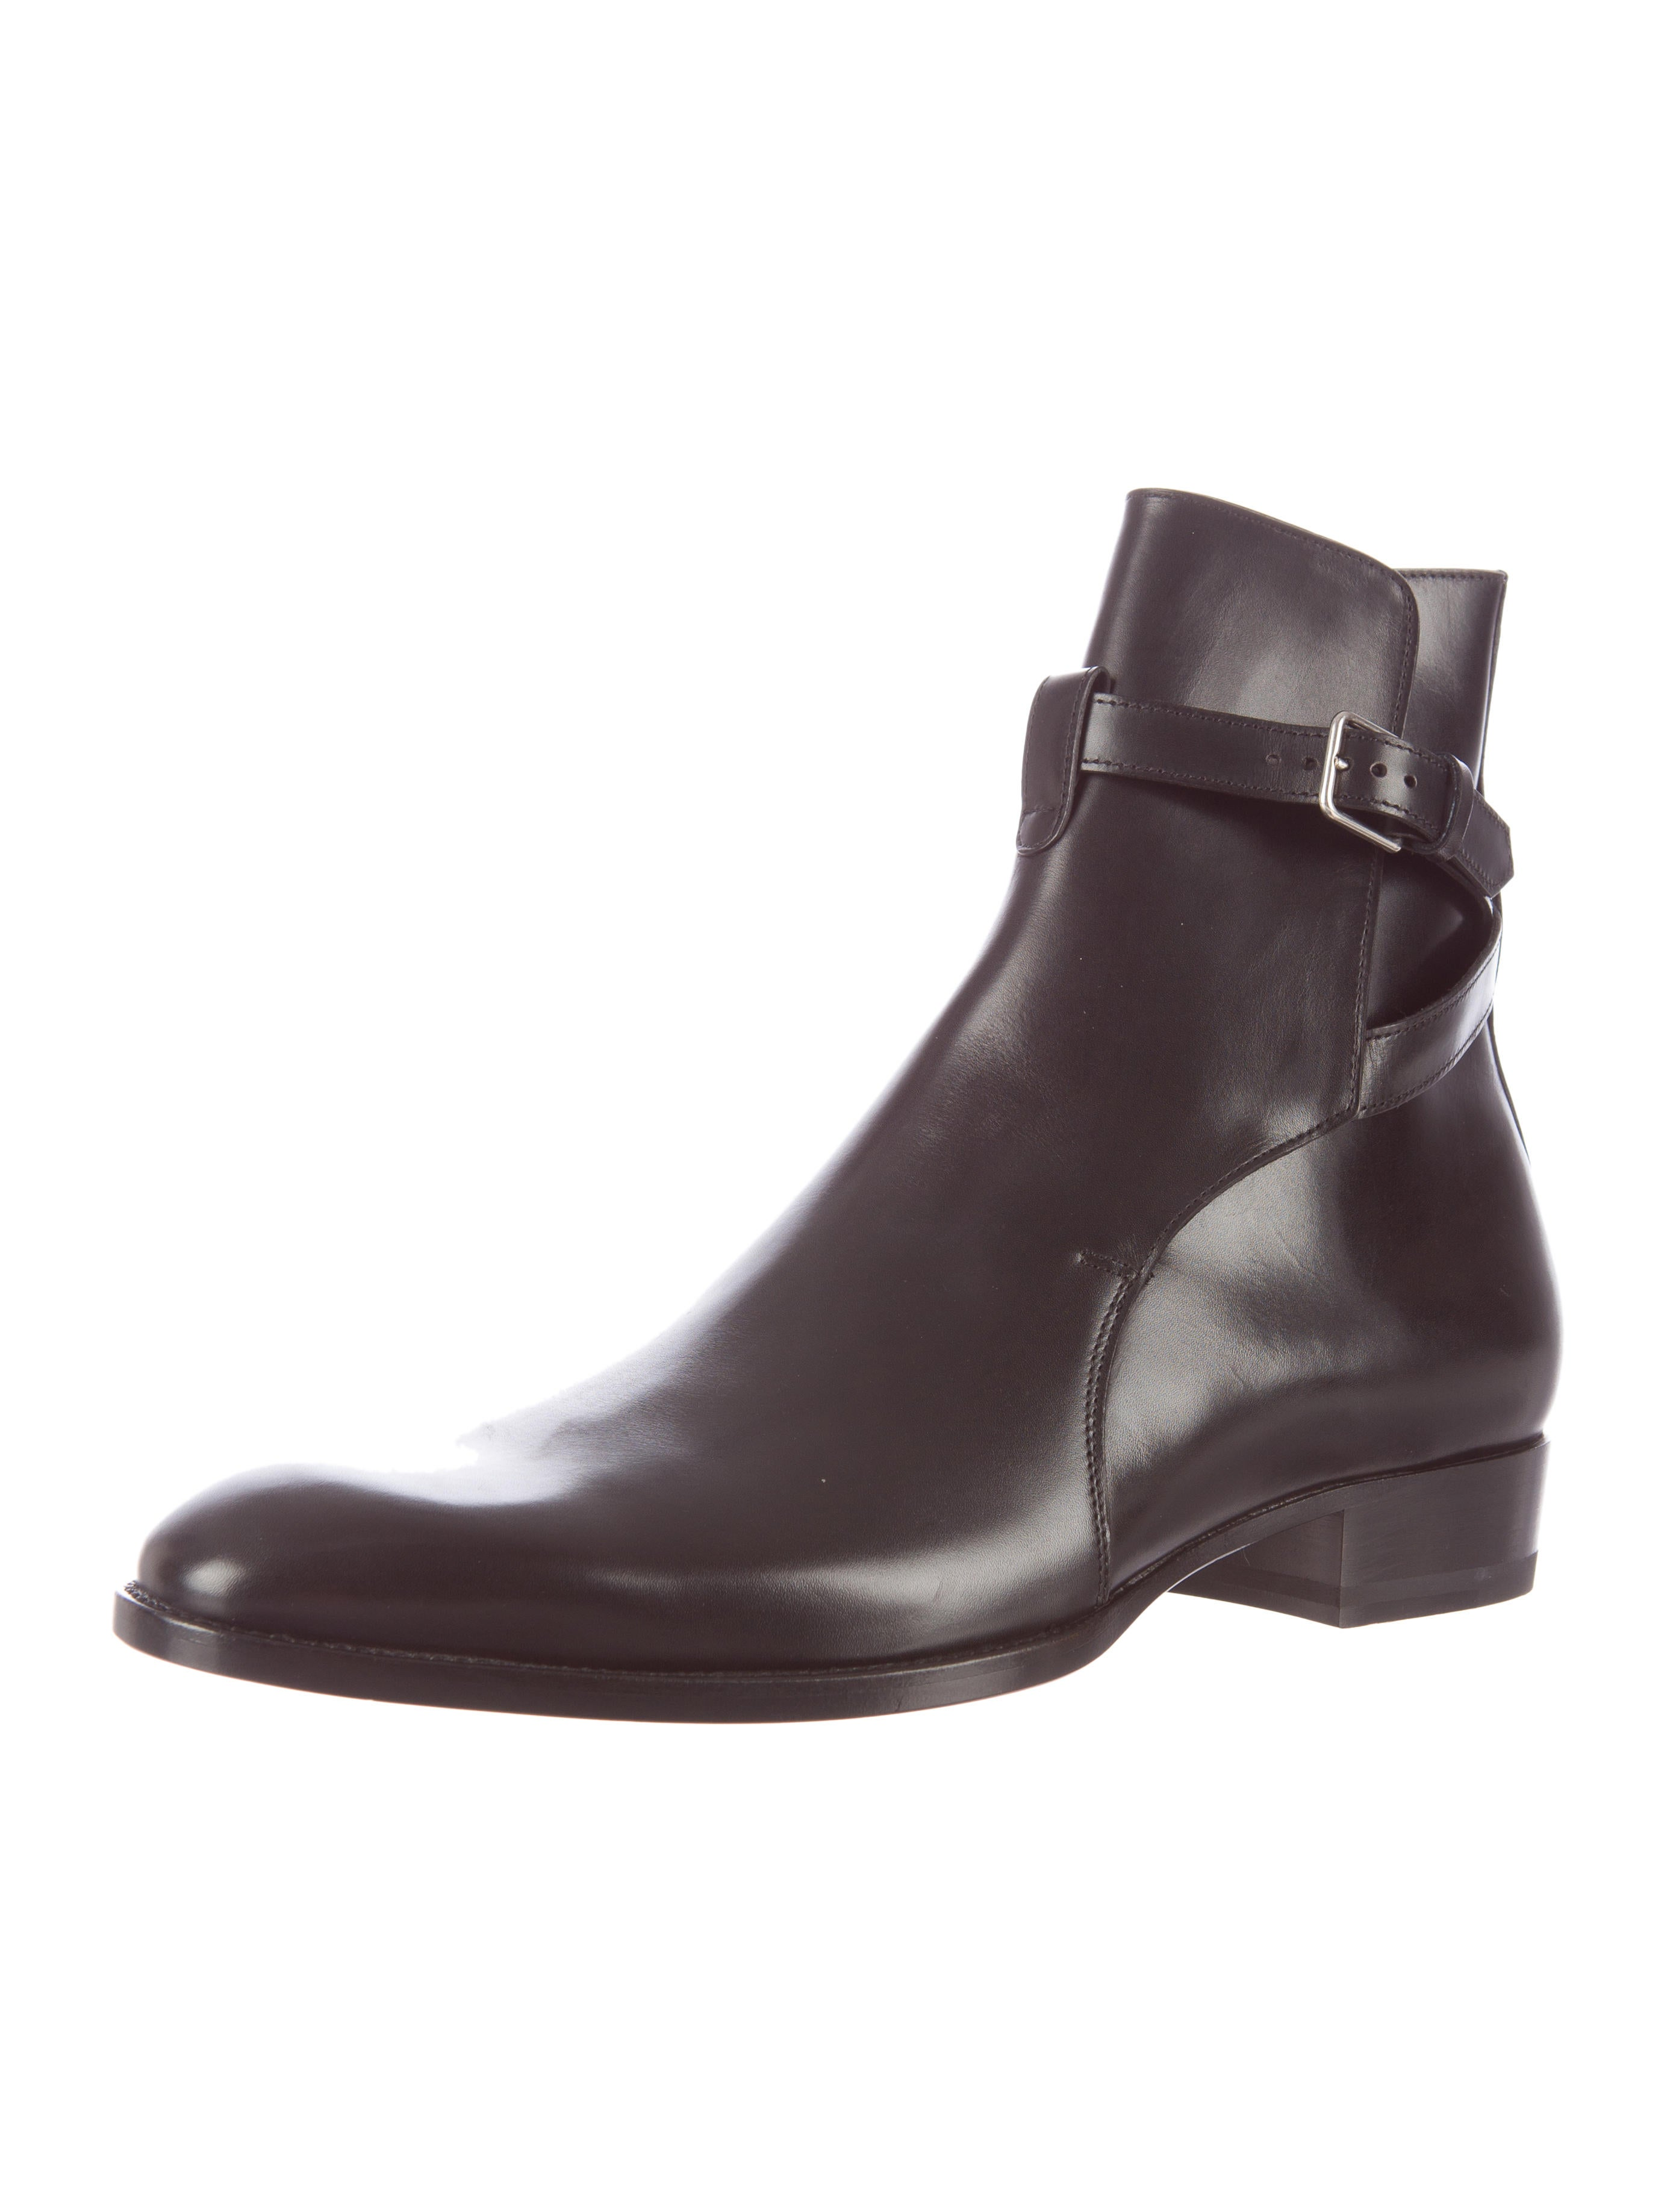 laurent jodhpur boots shoes snt22549 the realreal